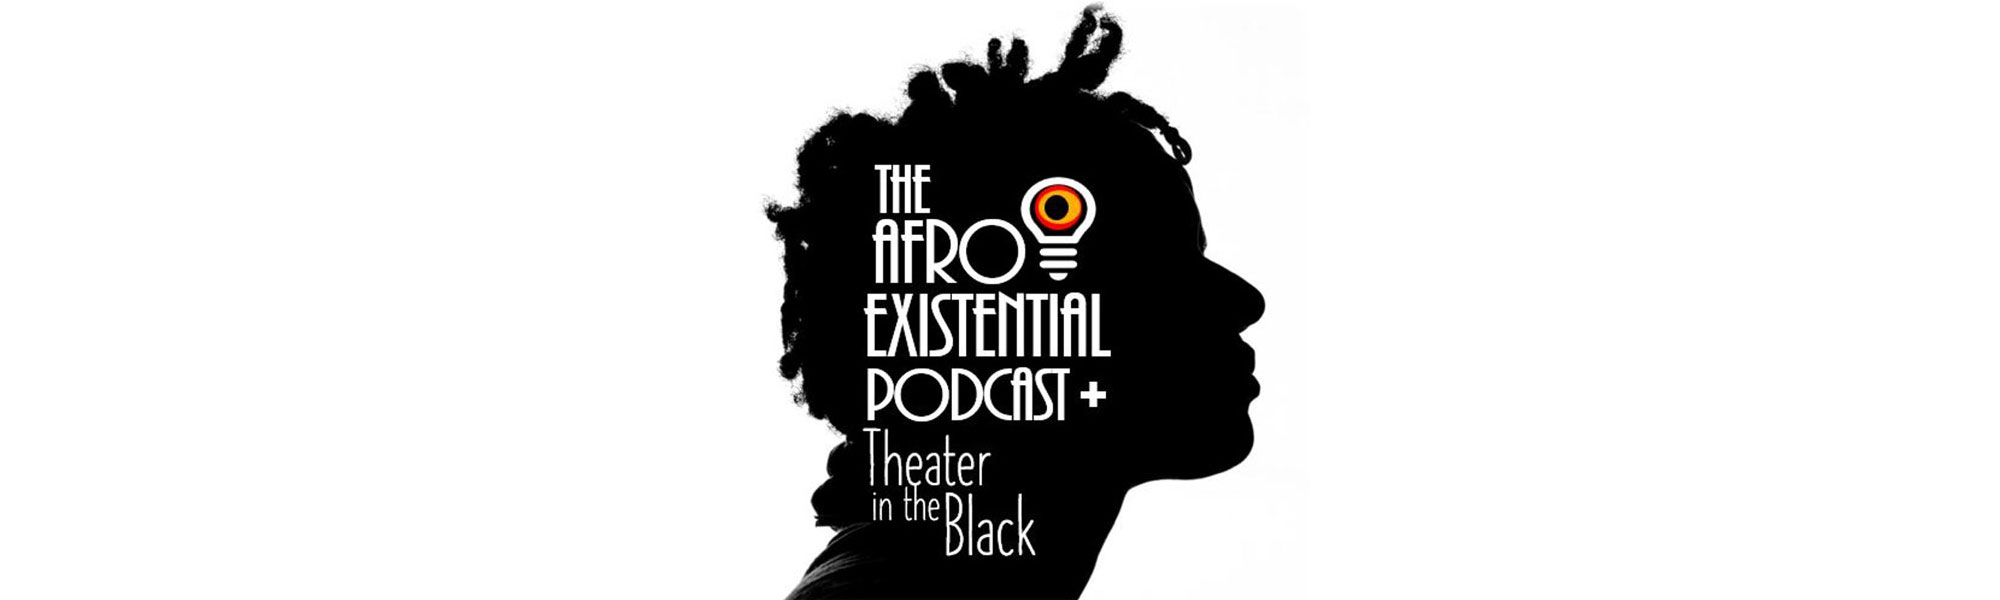 The Afro Existential Podcast Theatre in the Black